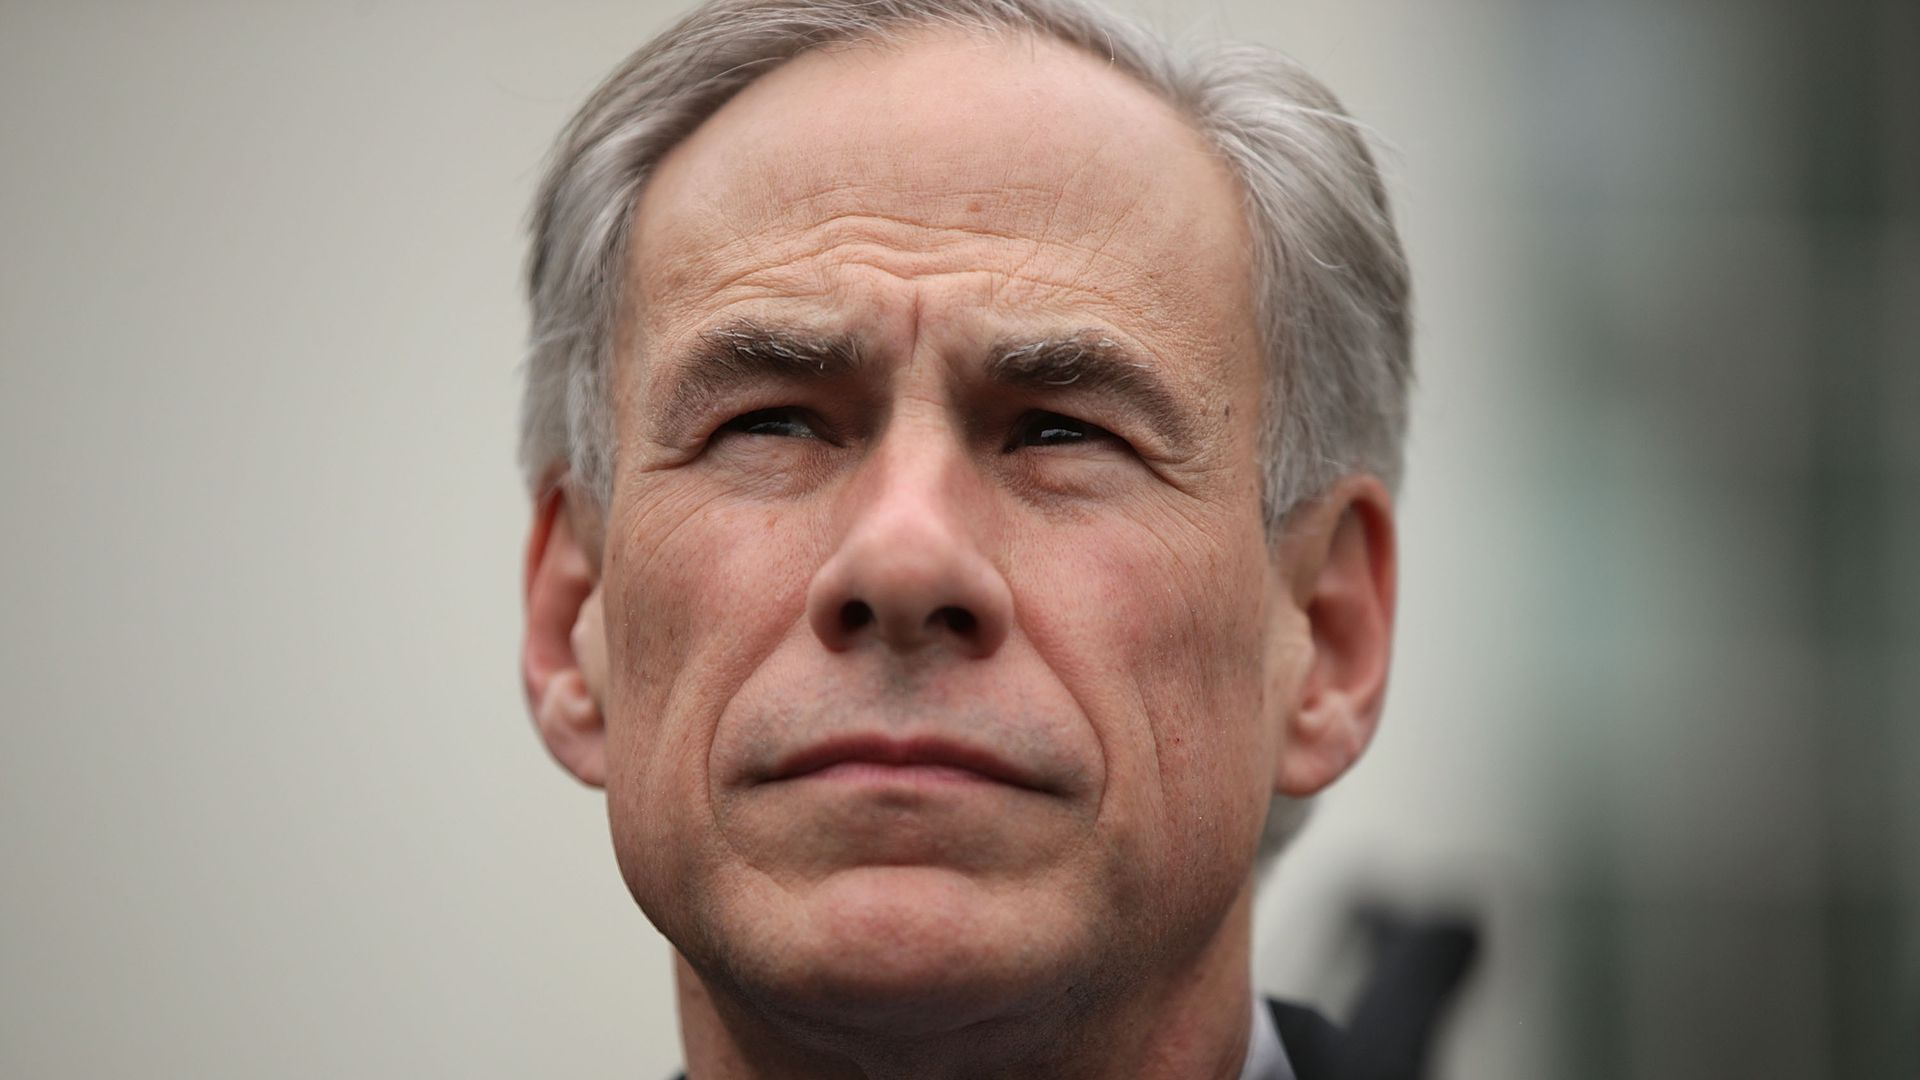 Texas Governor Greg Abbott participates in a news briefing outside the West Wing March 24, 2017 at the White House in Washington, DC.